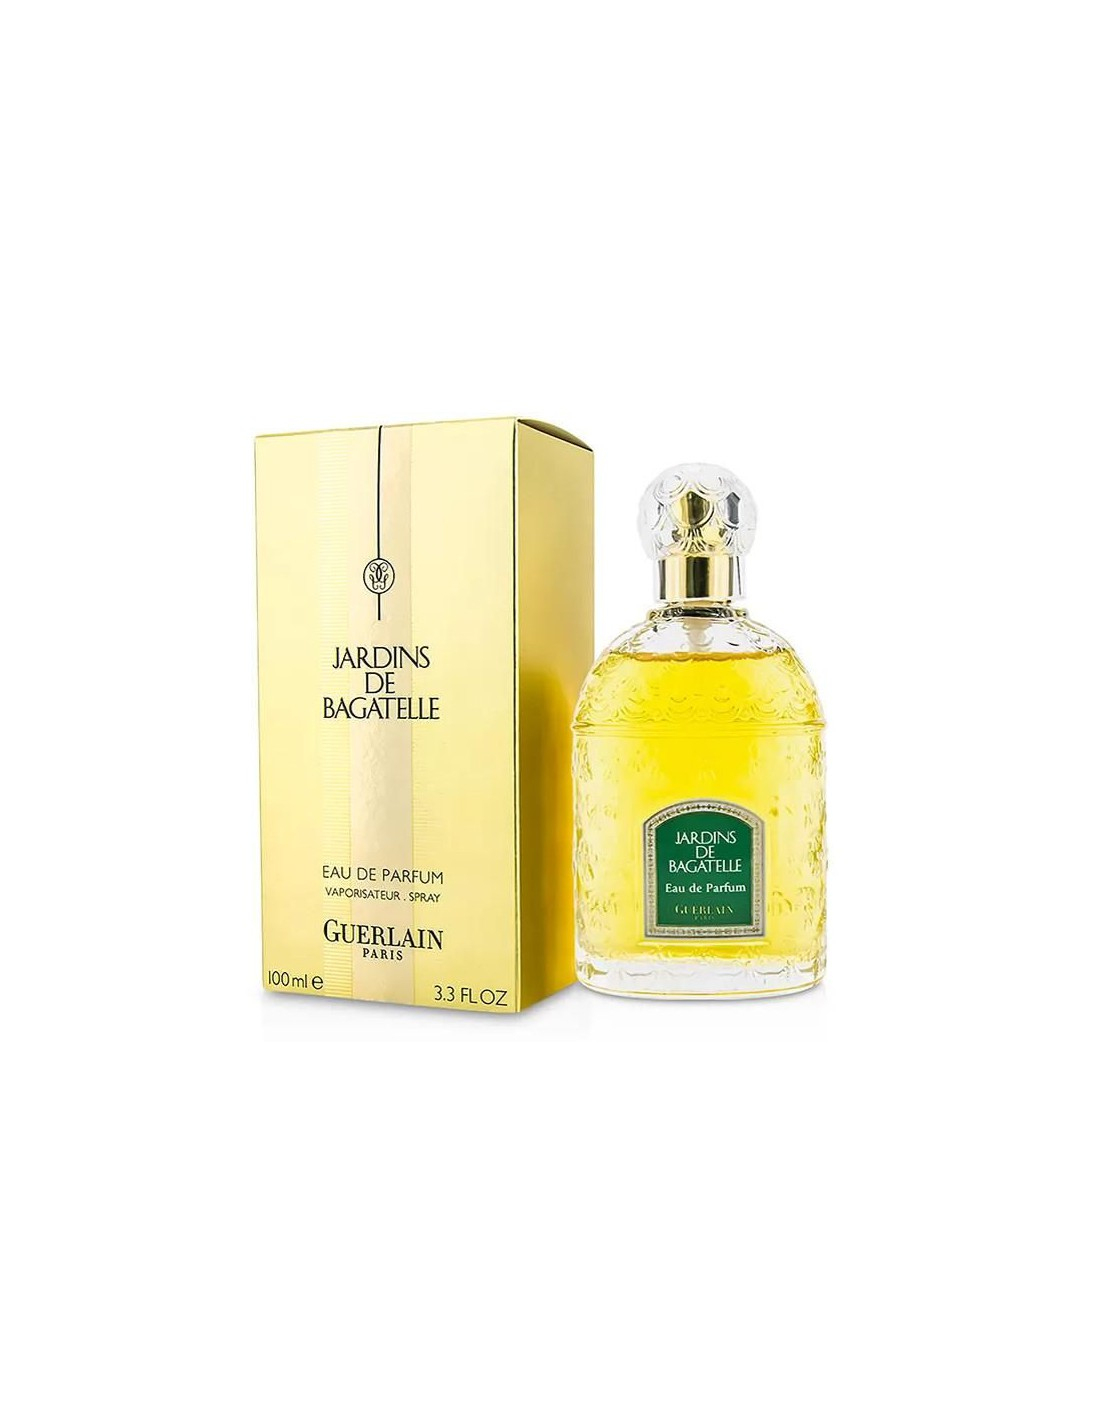 Guerlain Jardins De Bagatelle For Women - Eau De Parfum Spray, 100 Ml dedans Jardin De Bagatelle Guerlain